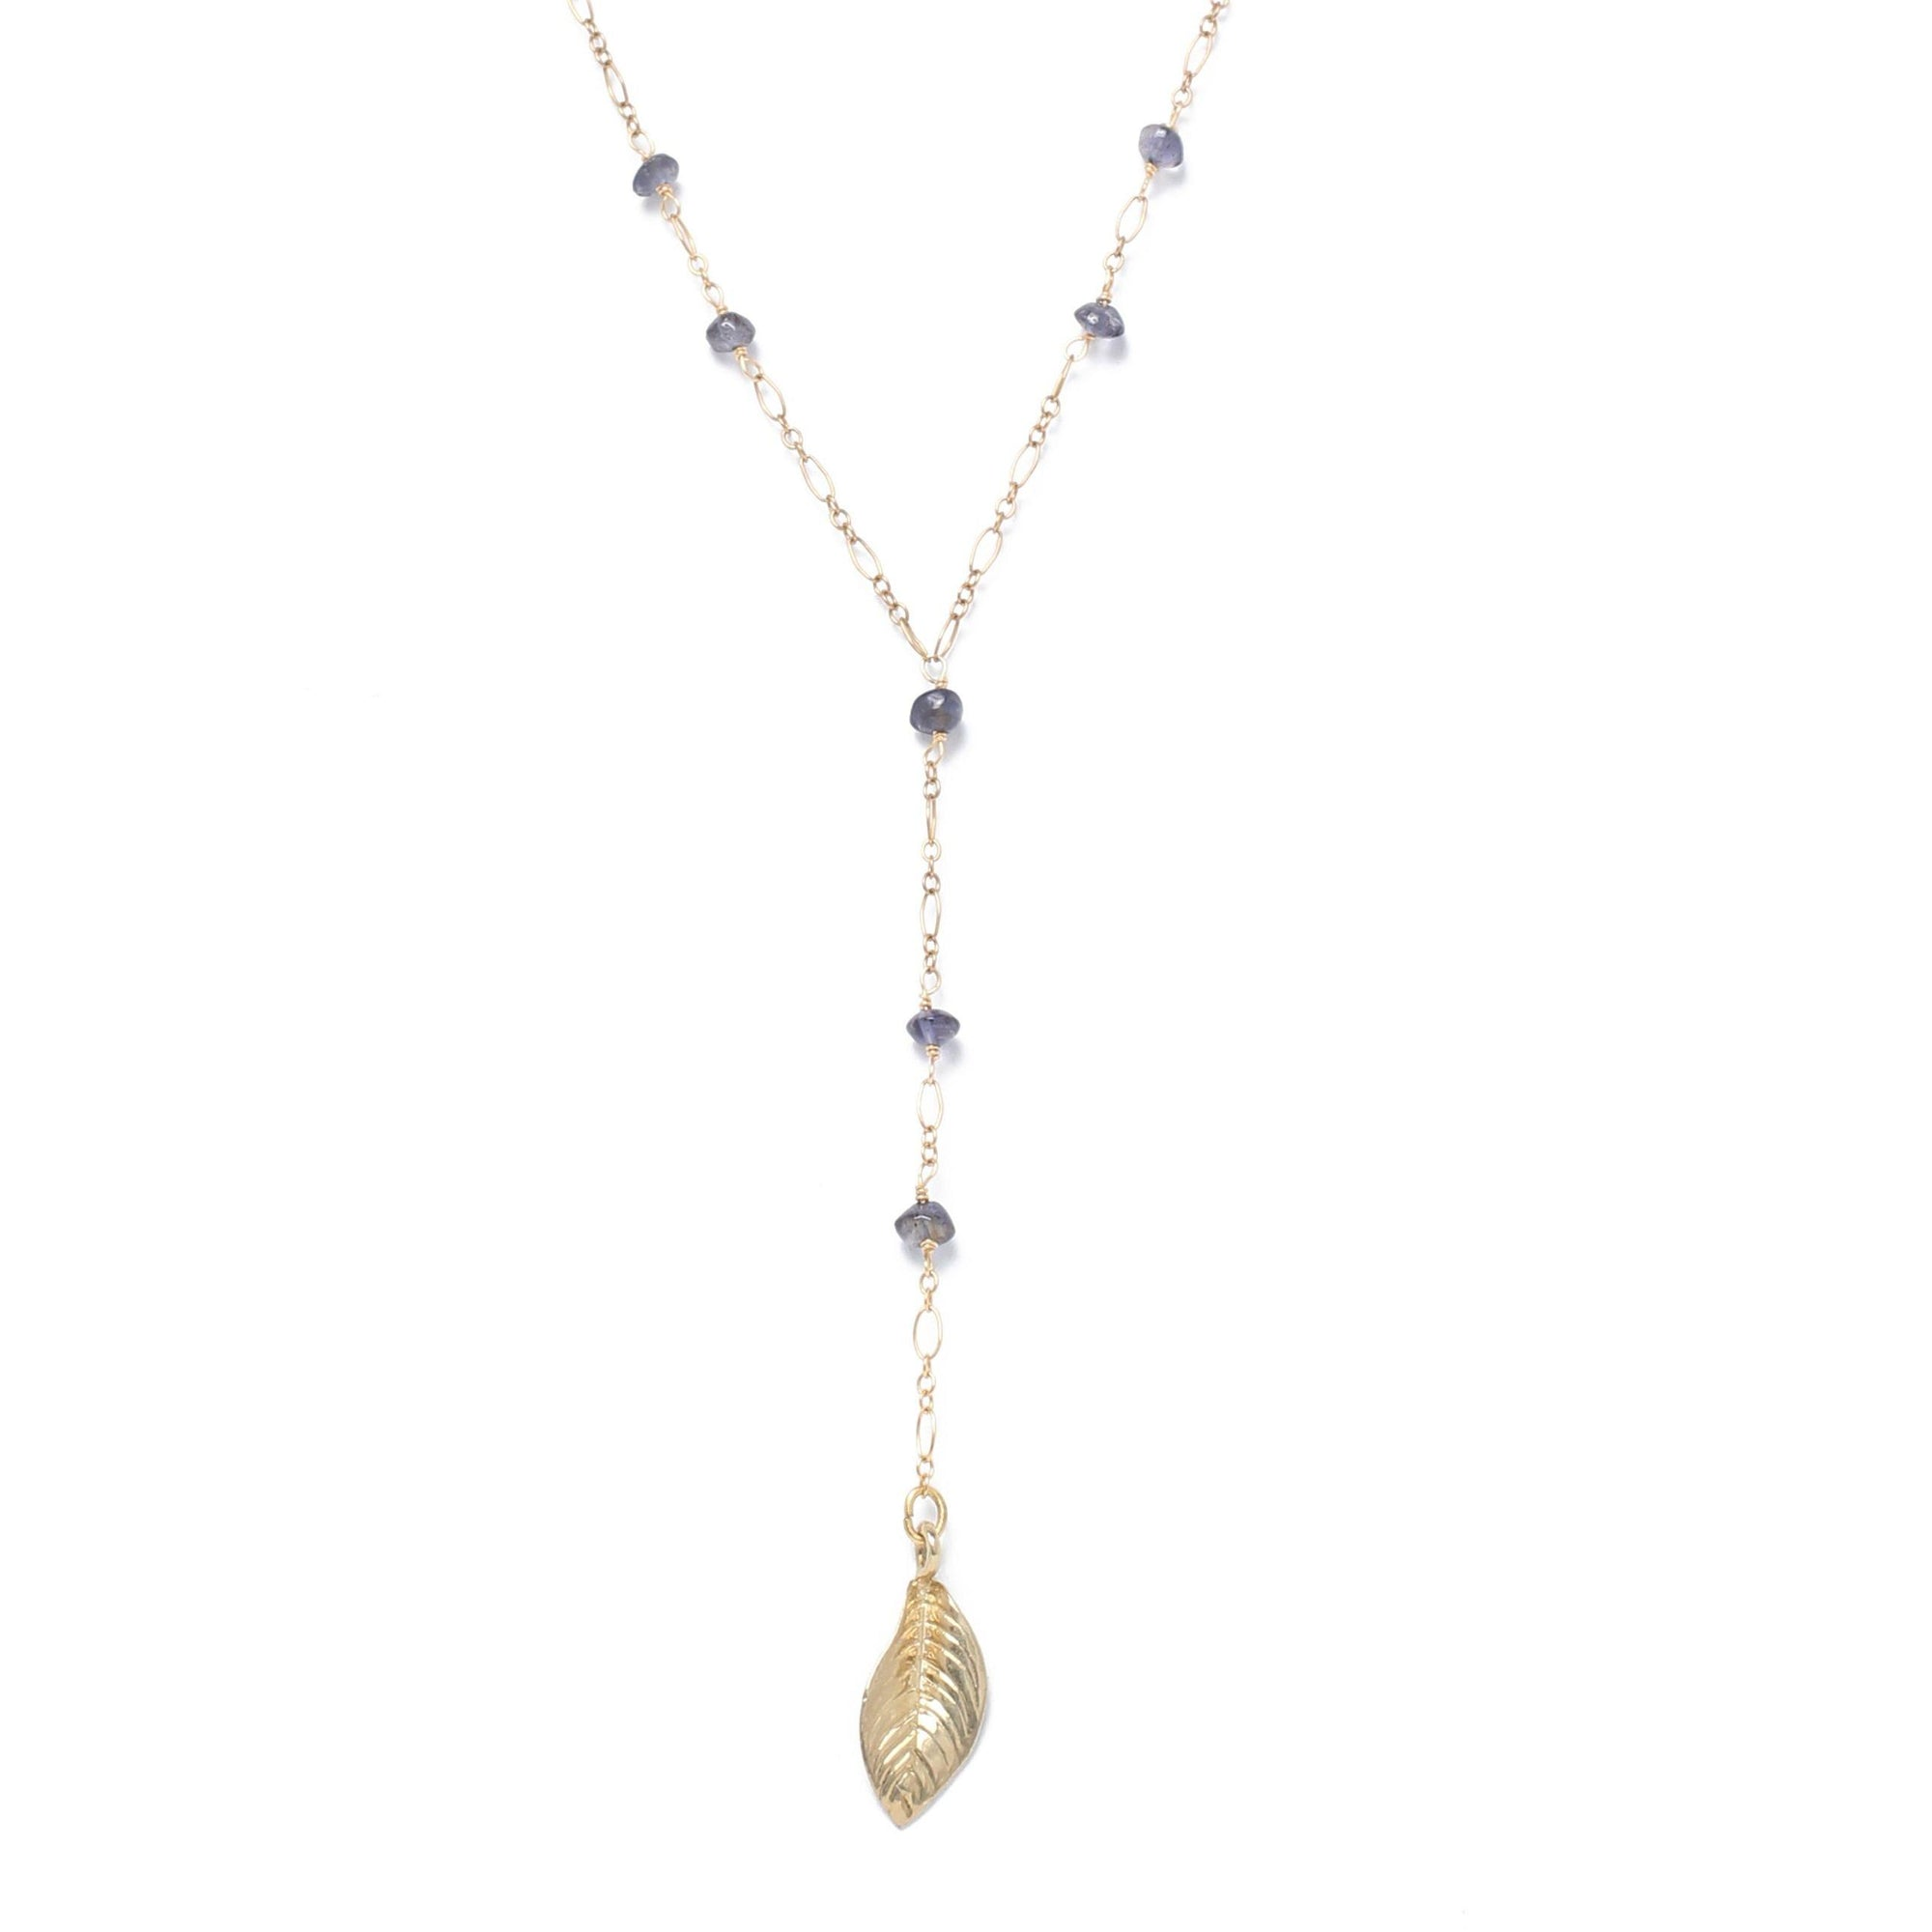 Y-Shaped Lolite Necklace - Miraposa